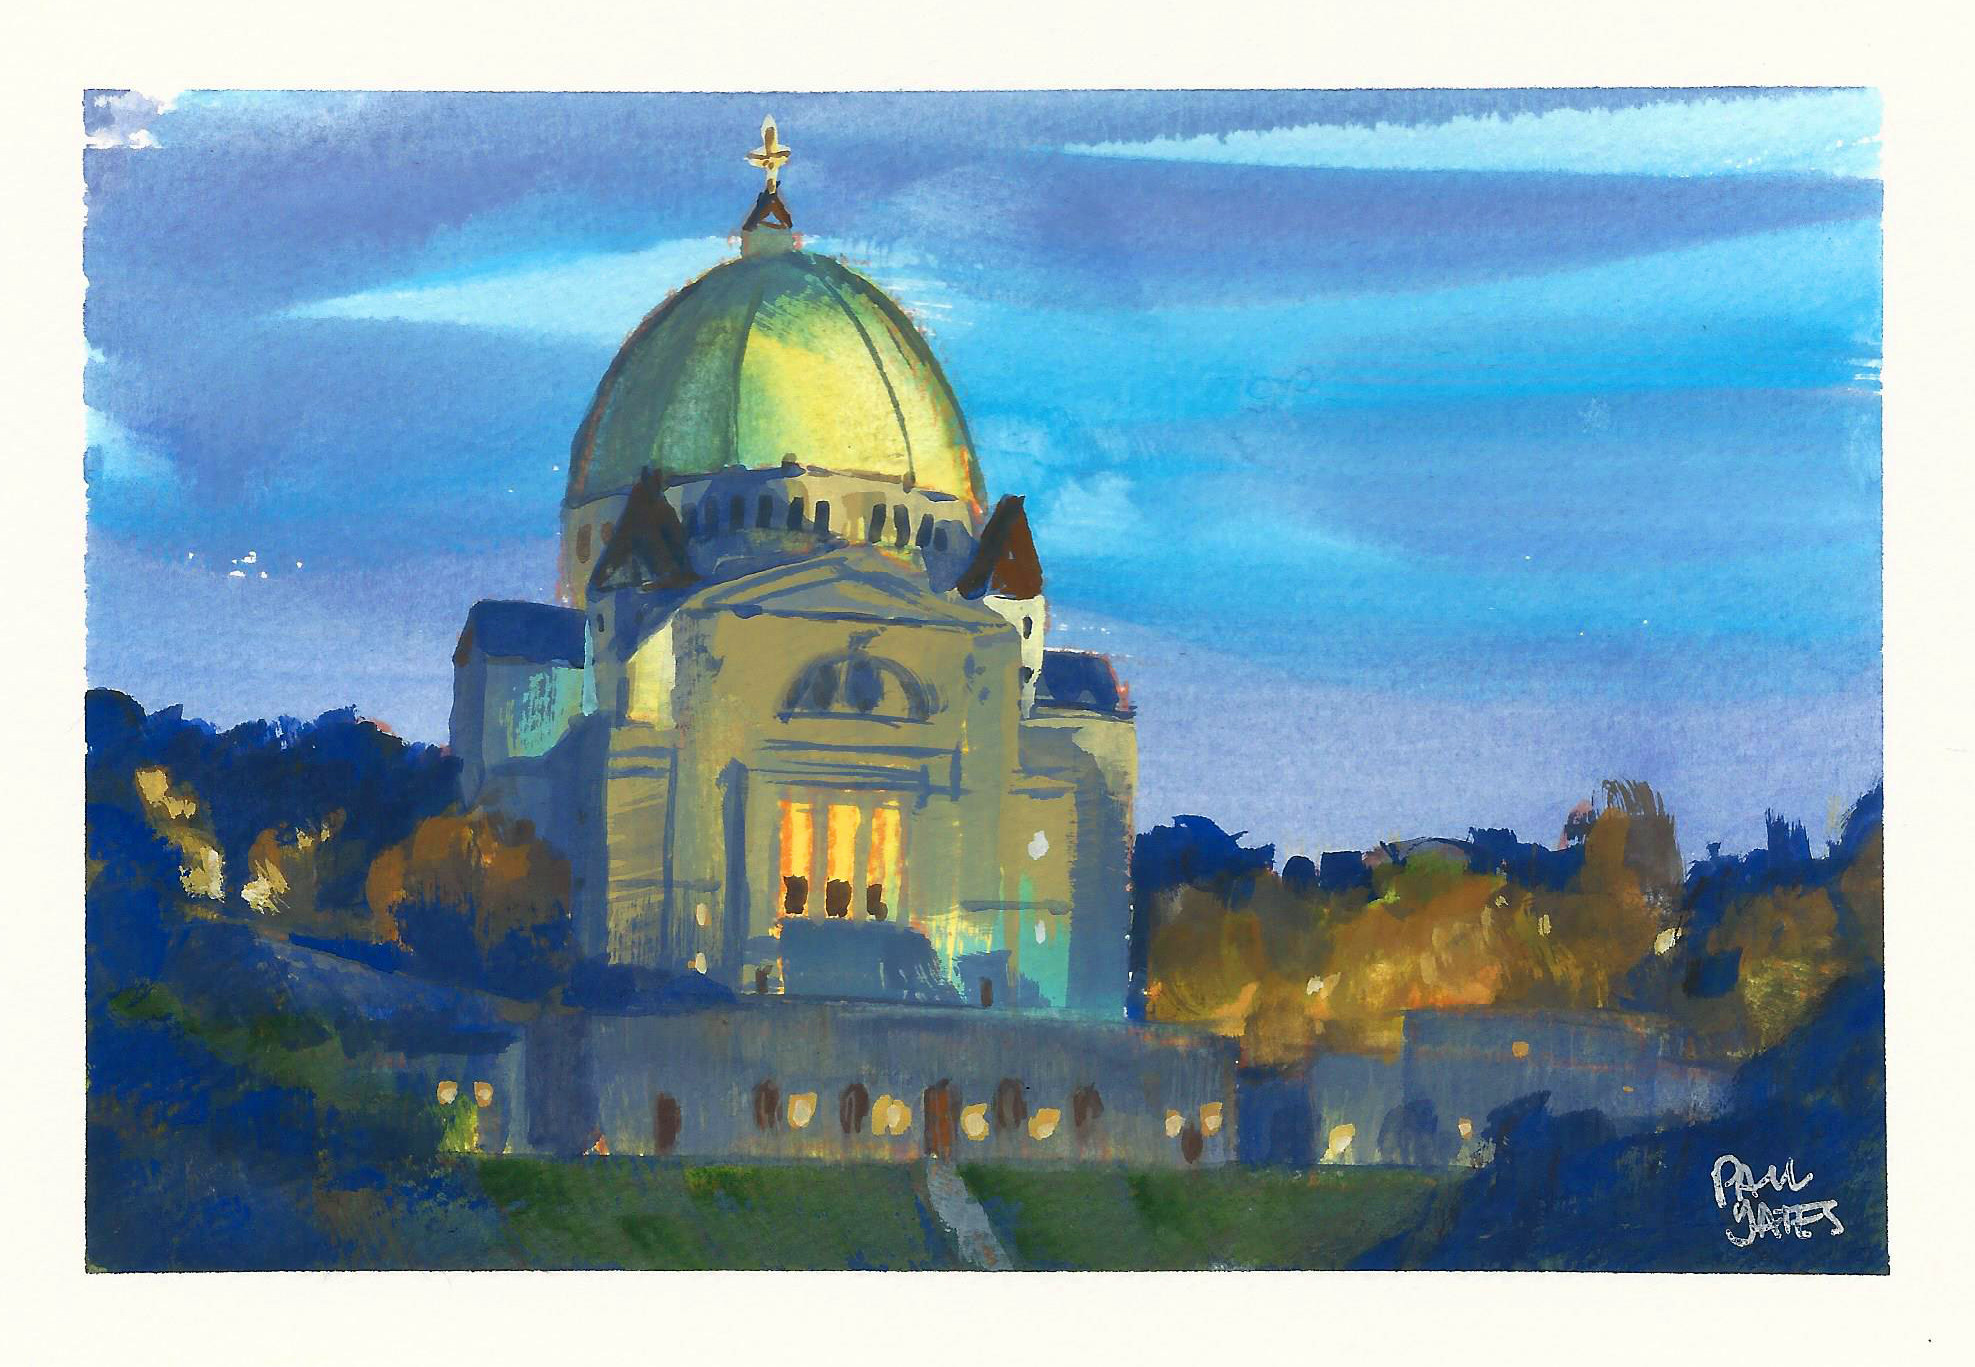 Commission of St Joseph's Oratory